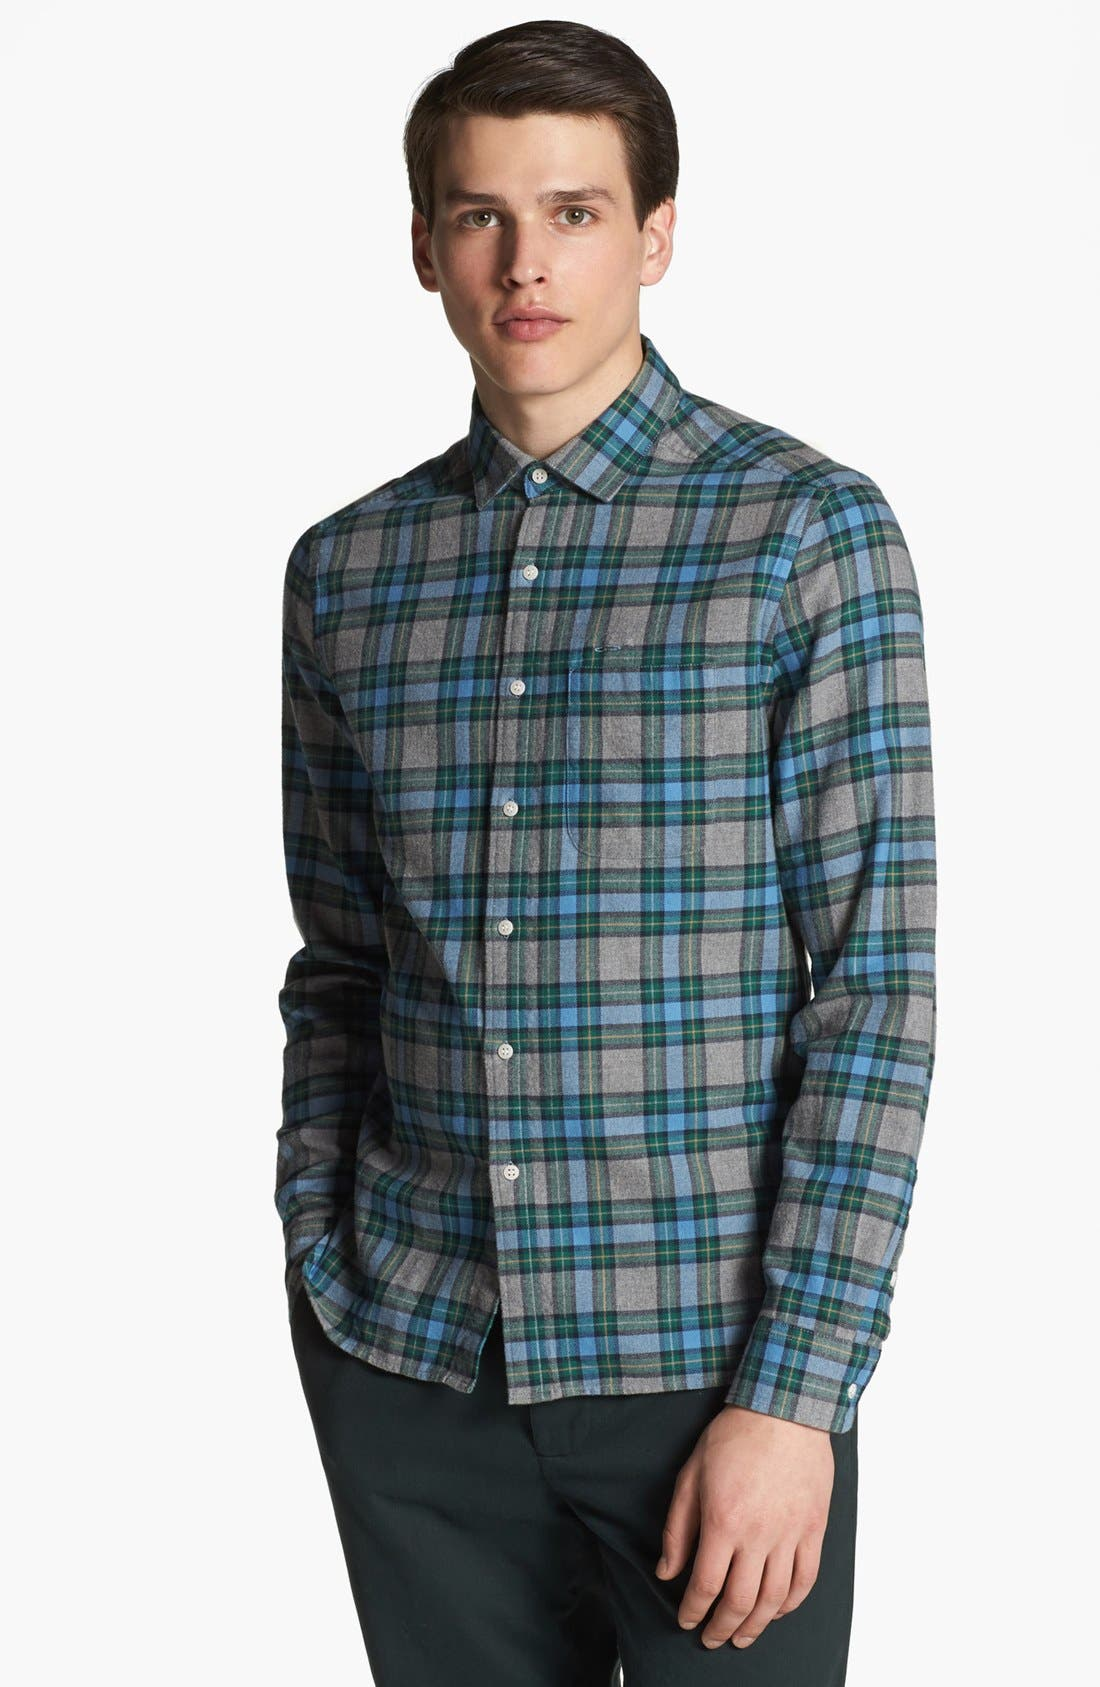 SHIPLEY & HALMOS 'Marine' Plaid Woven Shirt, Main, color, 020